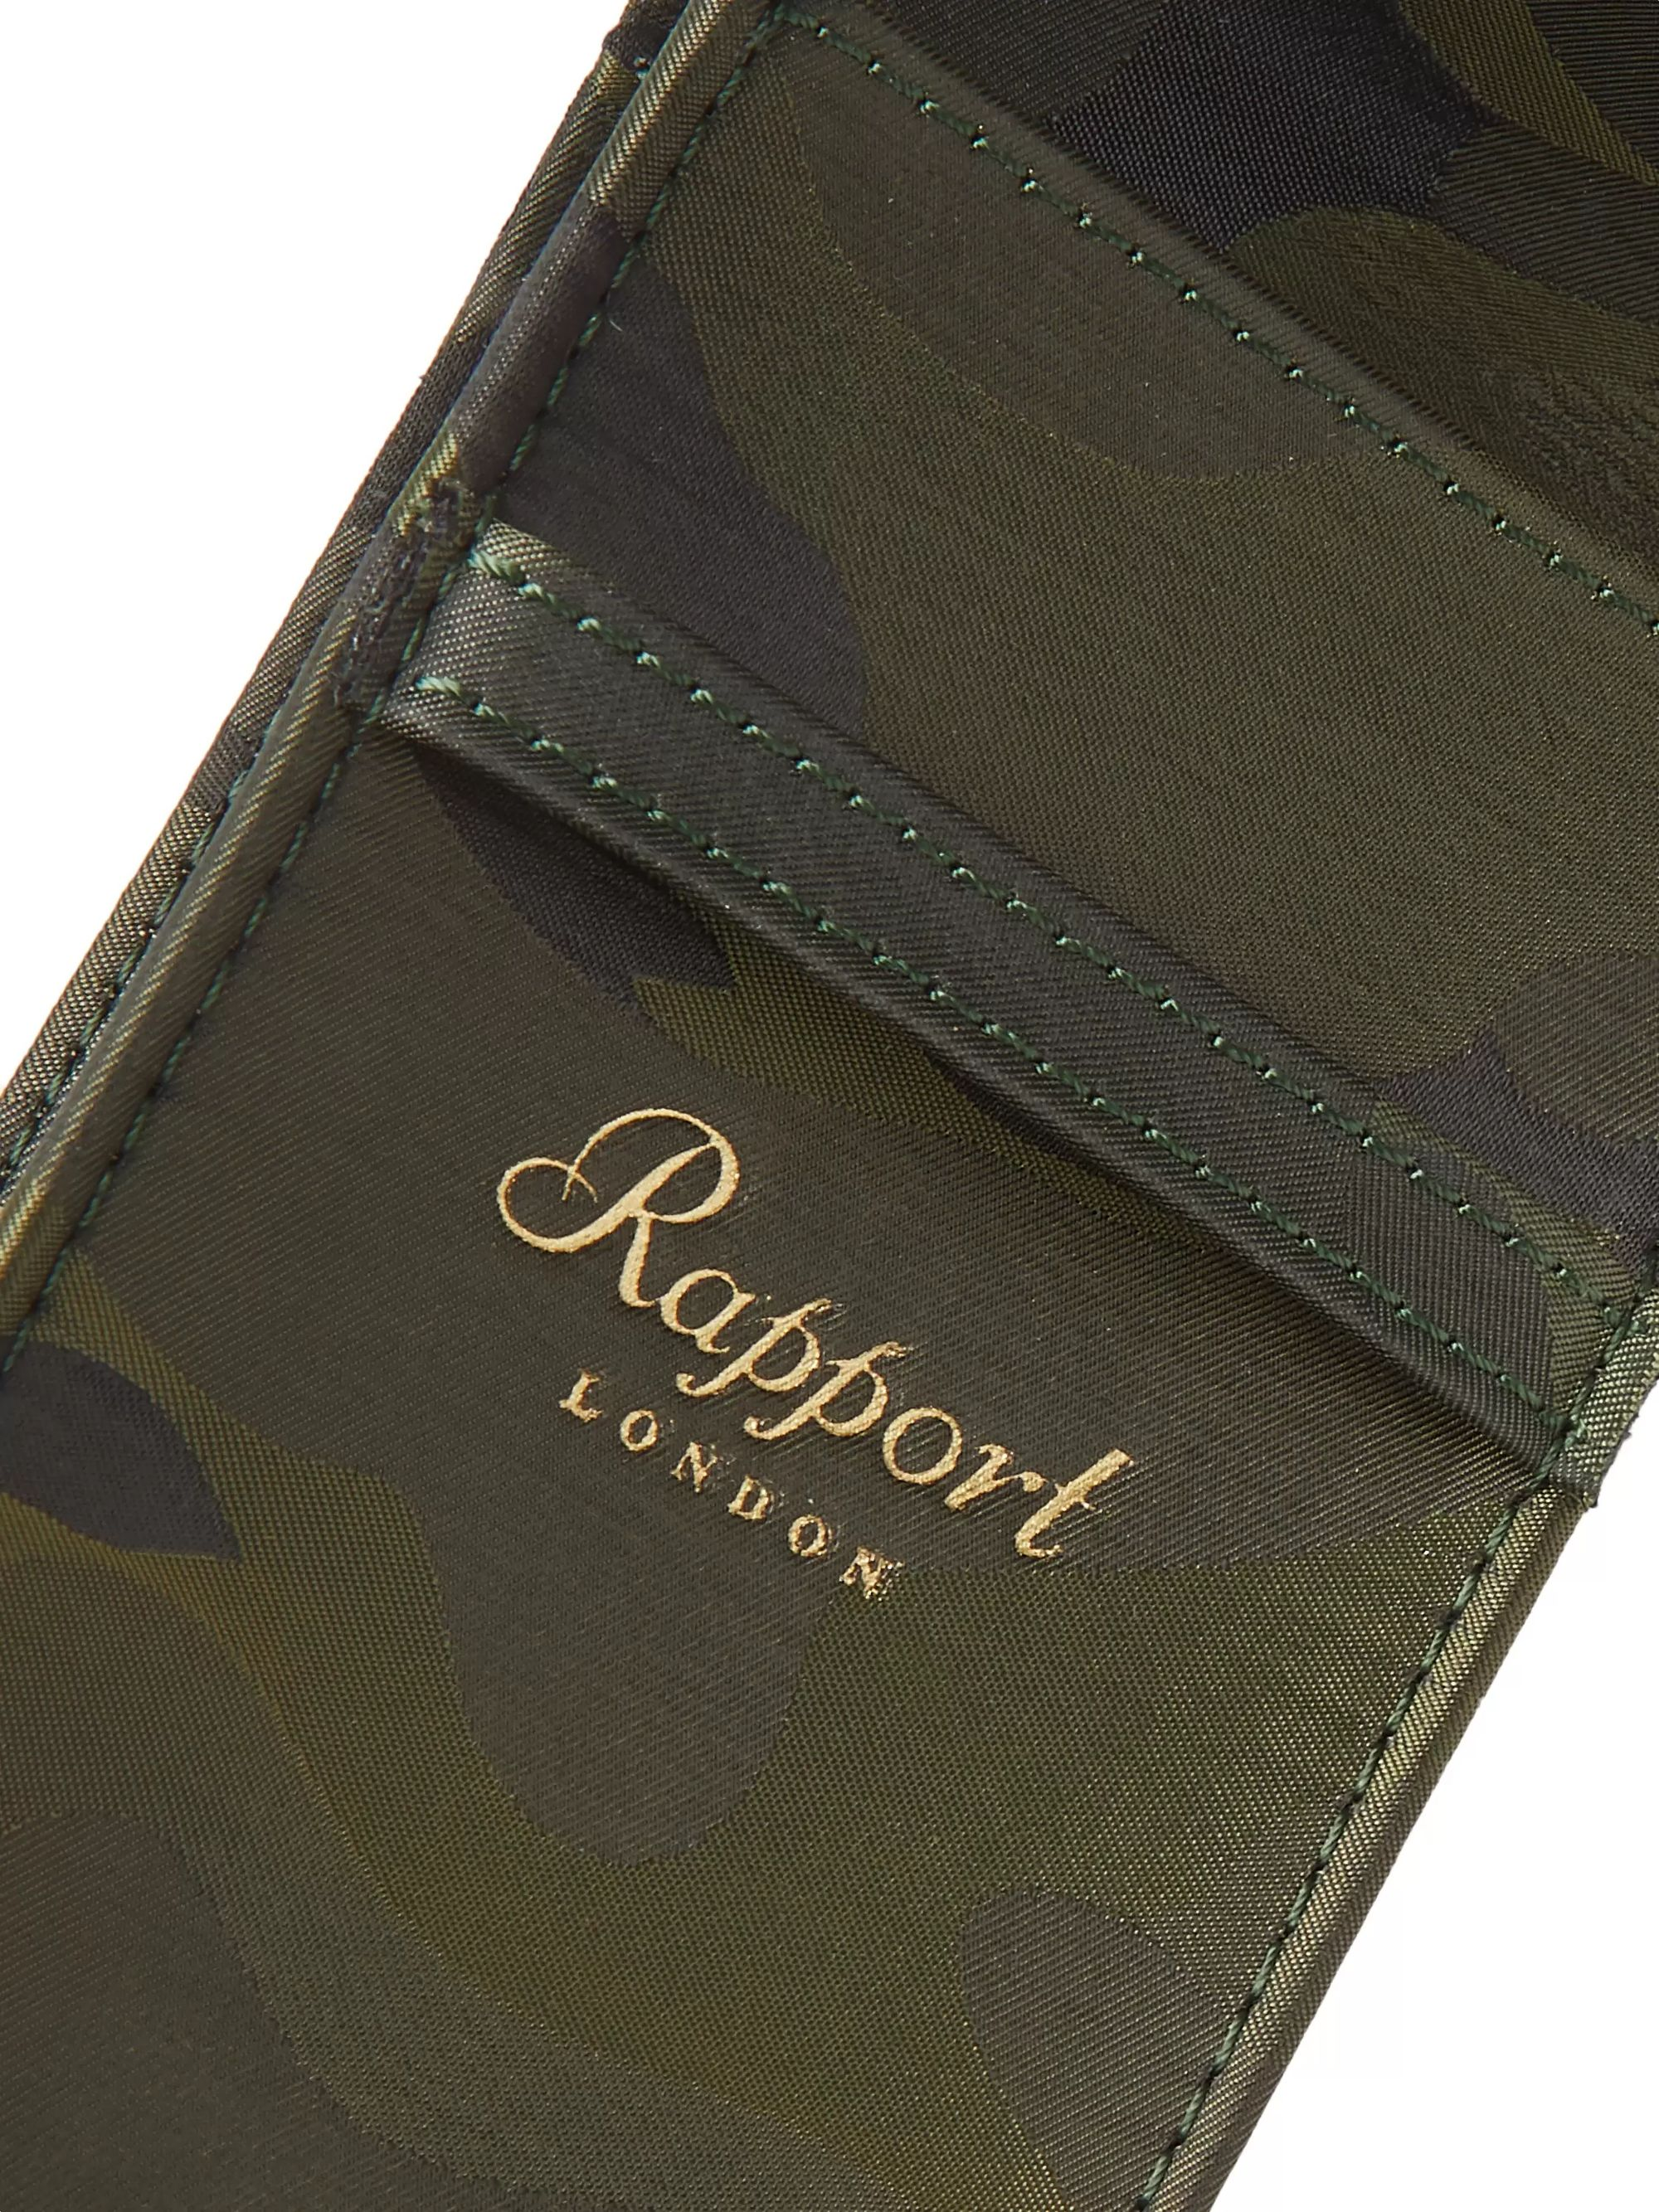 Rapport London Camouflage-Print Coated-Canvas Watch Case